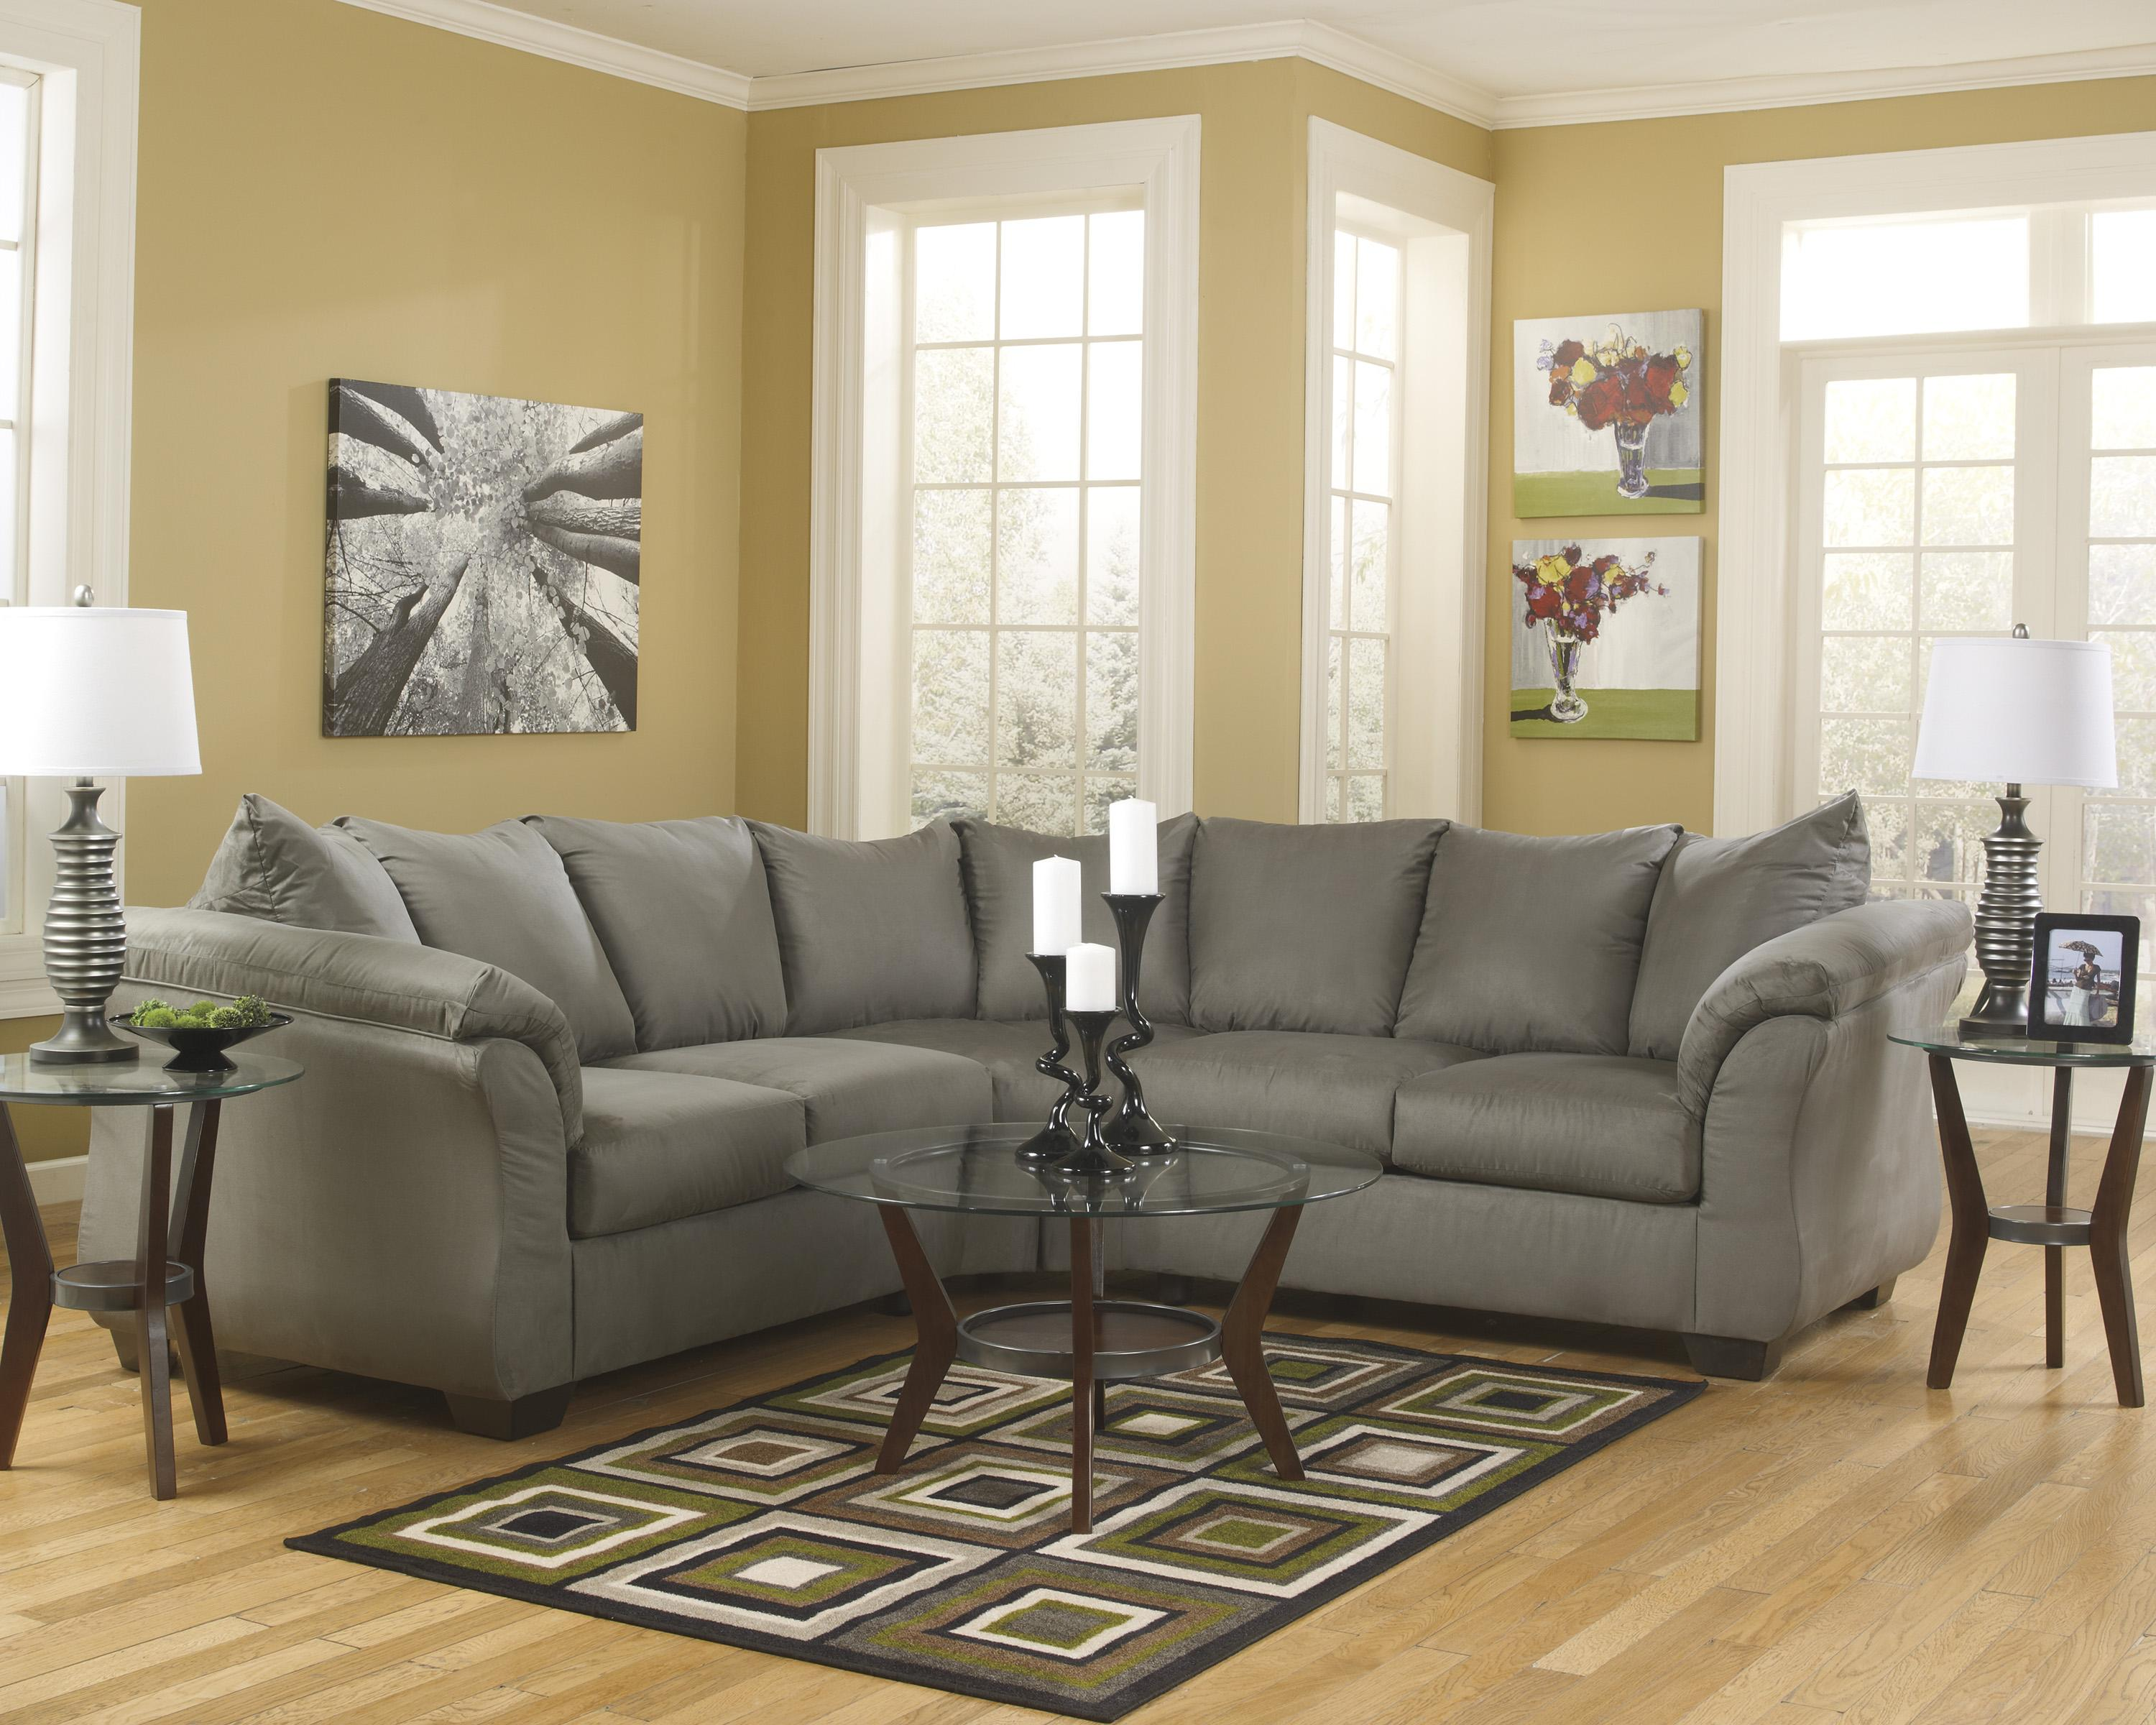 Signature Design By Ashley Darcy Cobblestone Contemporary Sectional Sofa With Sweeping Pillow Arms Furniture Fair North Carolina Sofas